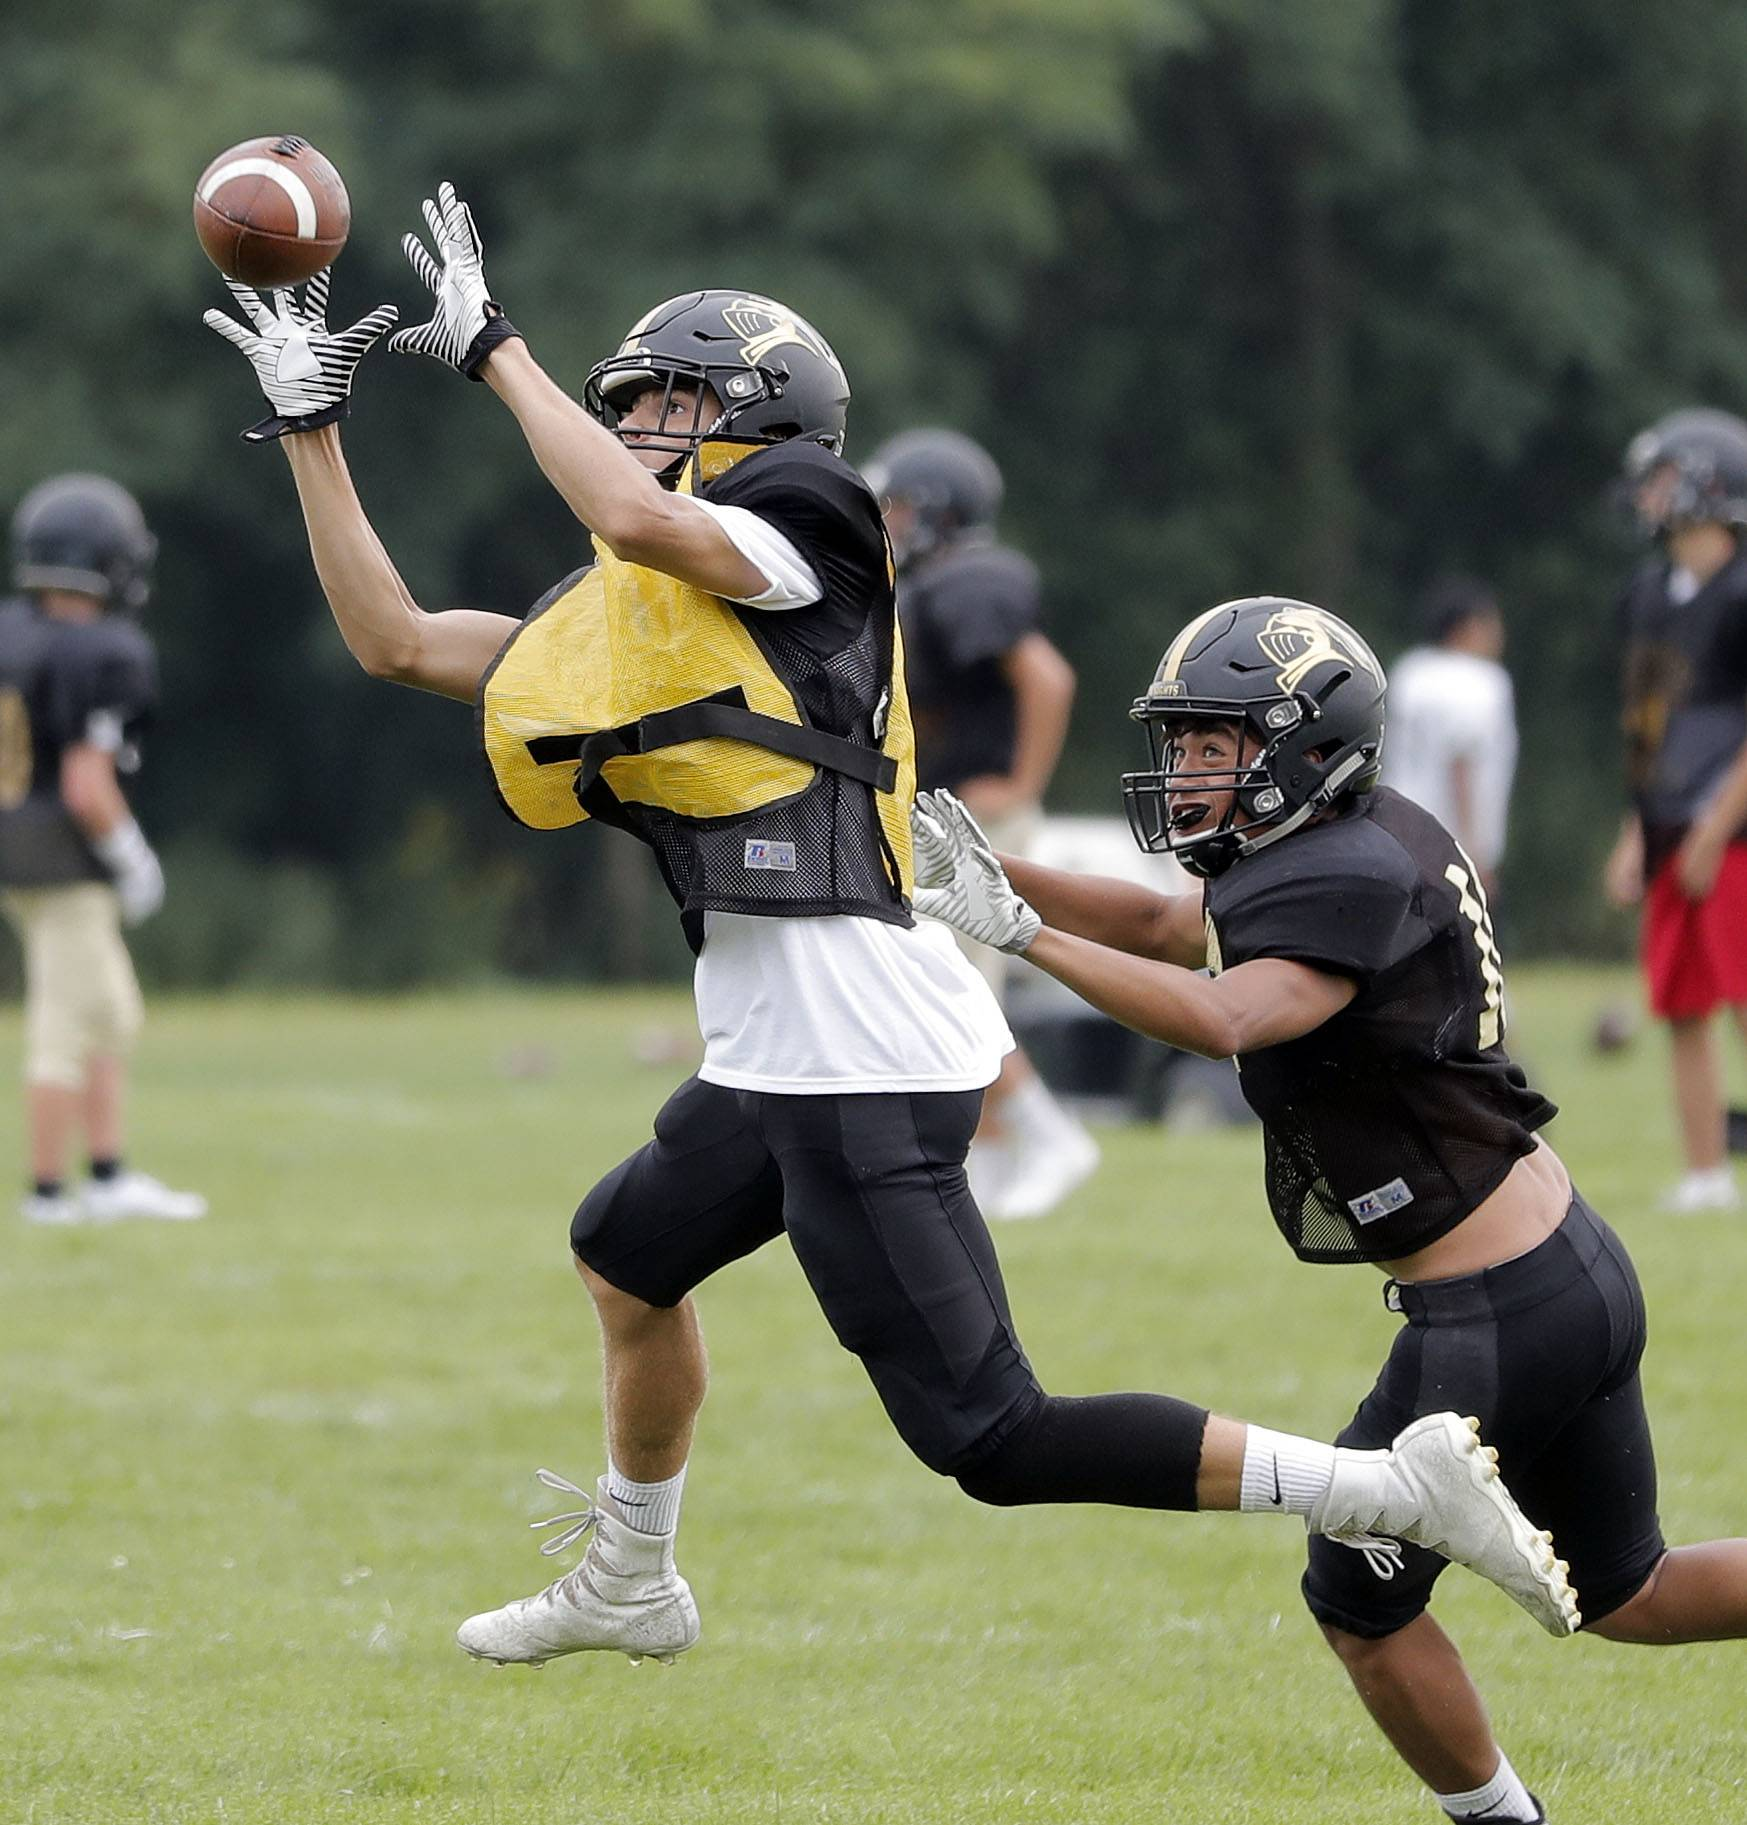 Steve Lundy/slundy@dailyherald.comDB Mickey Brown makes an interception during football practice at Grayslake North.